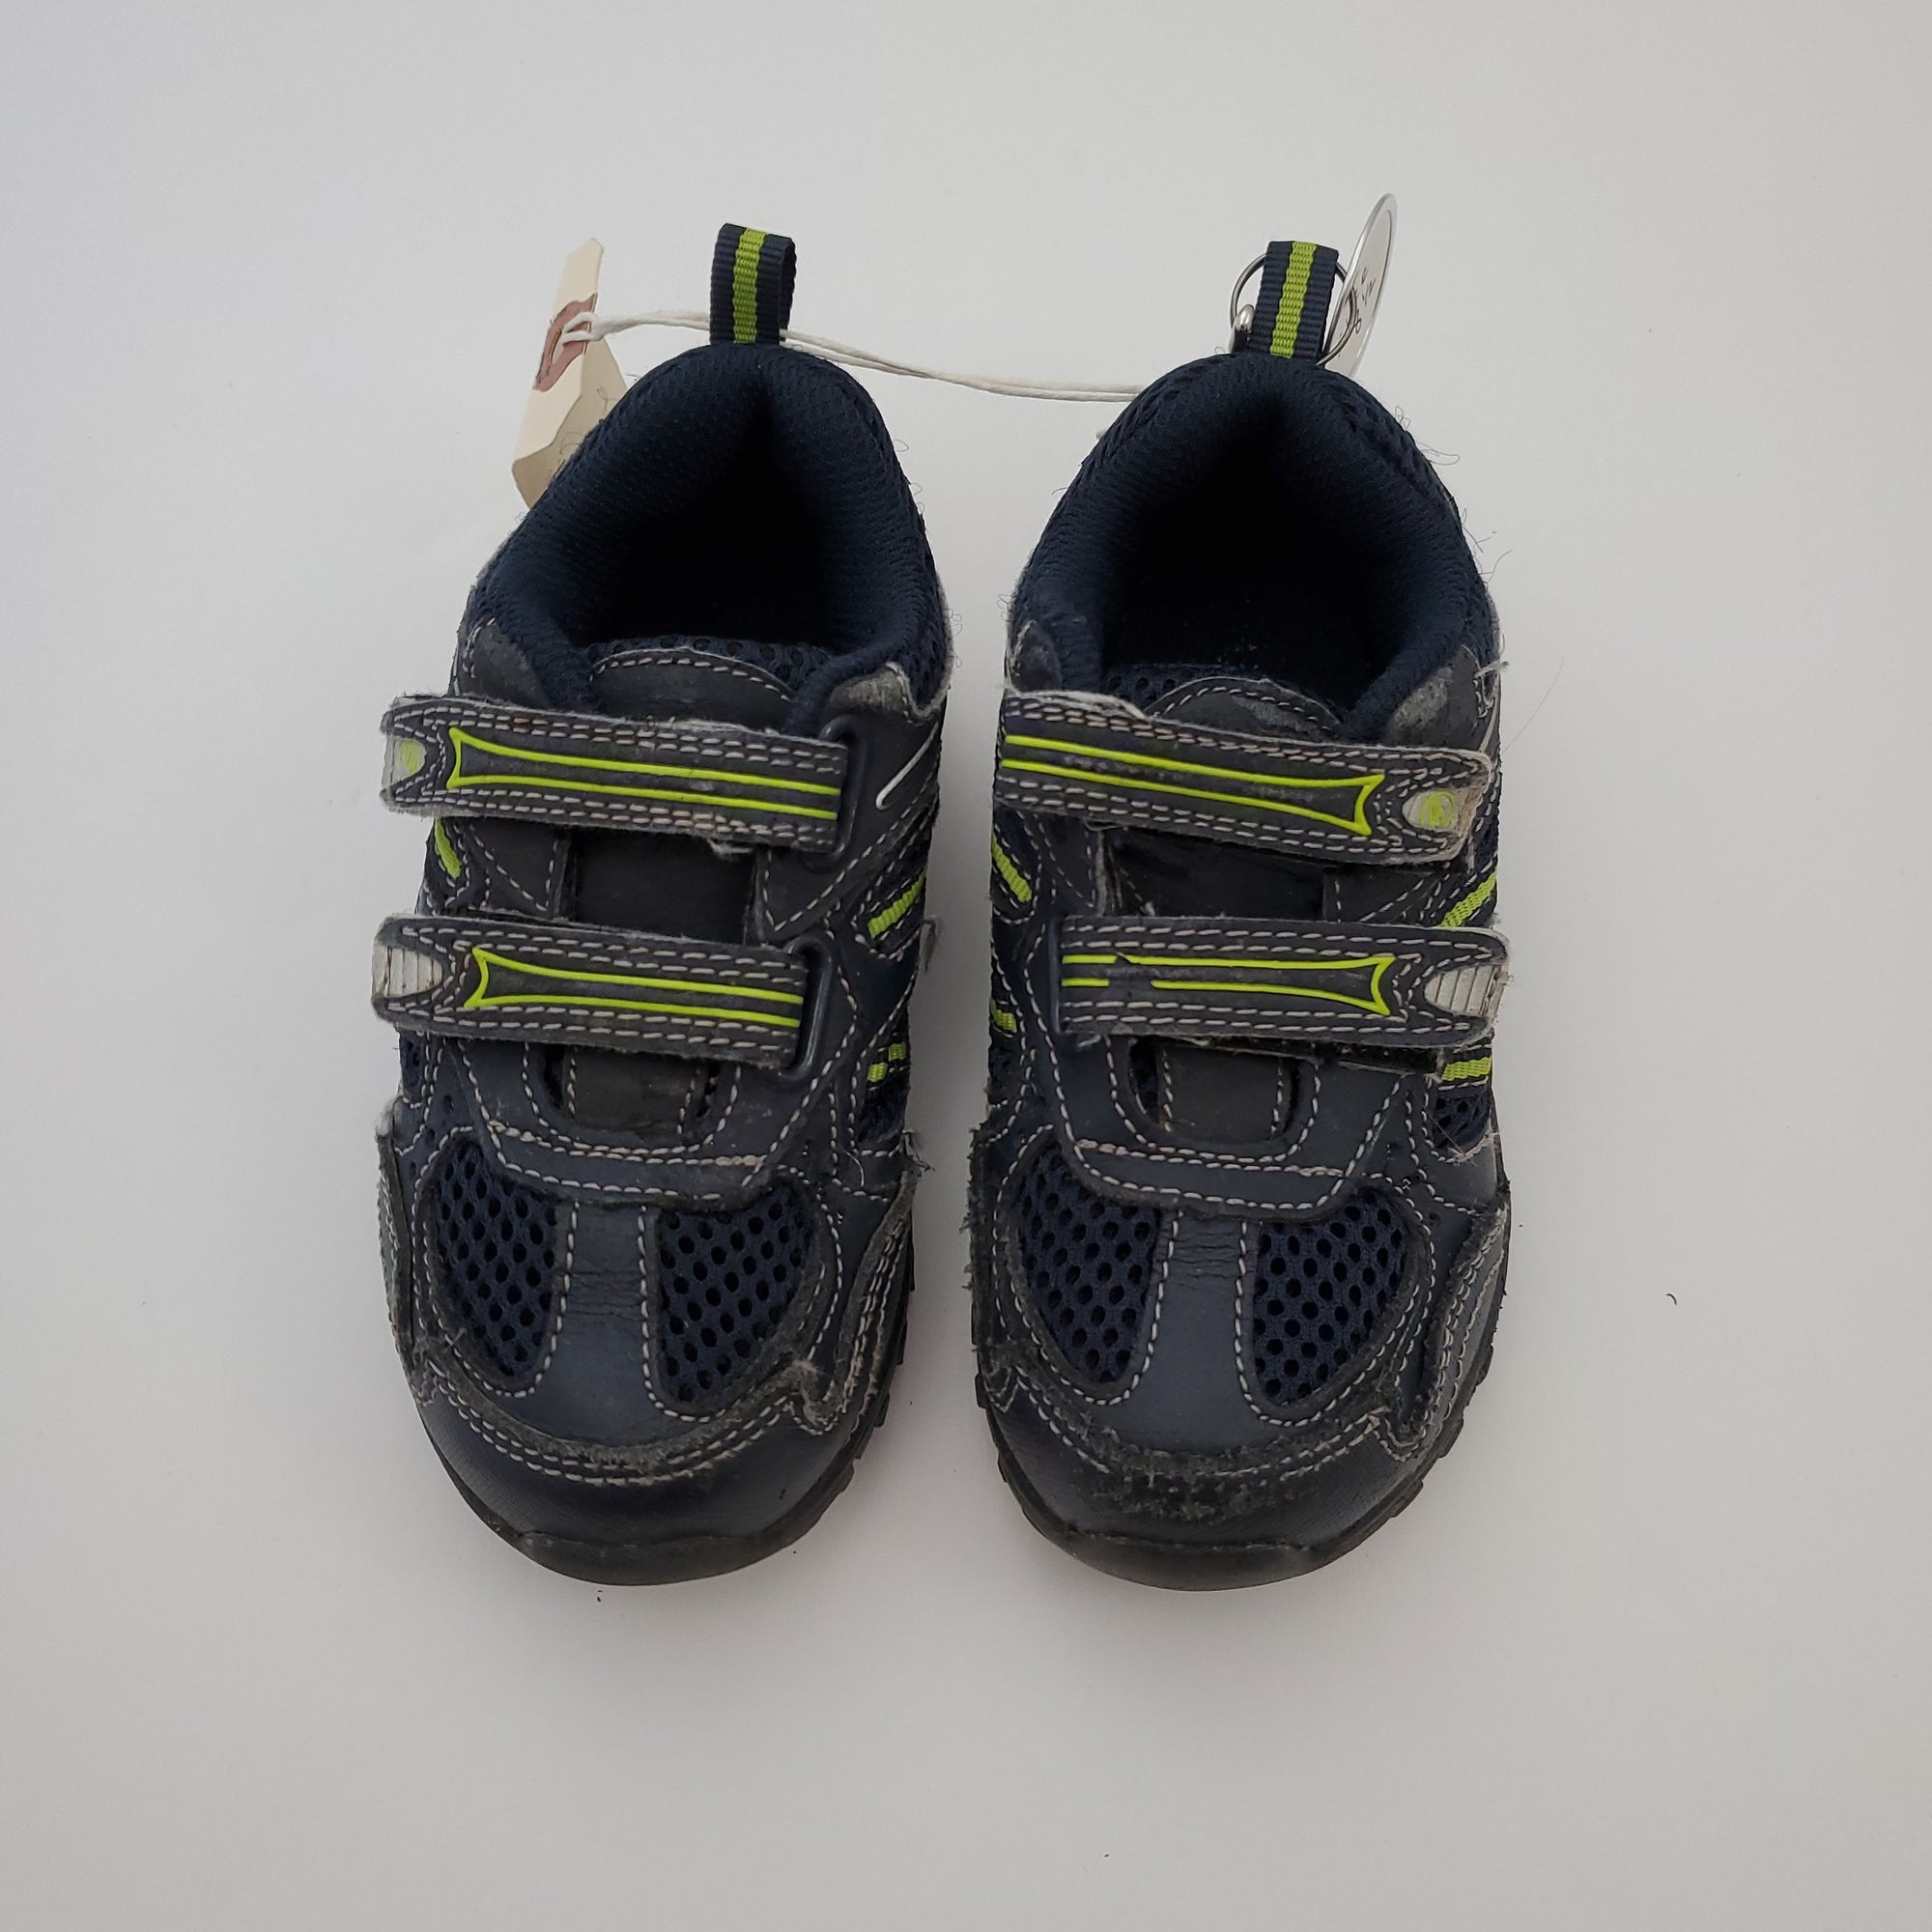 Resale C8.5 Stride Rite Velcro Tab Shoes - Navy Blue